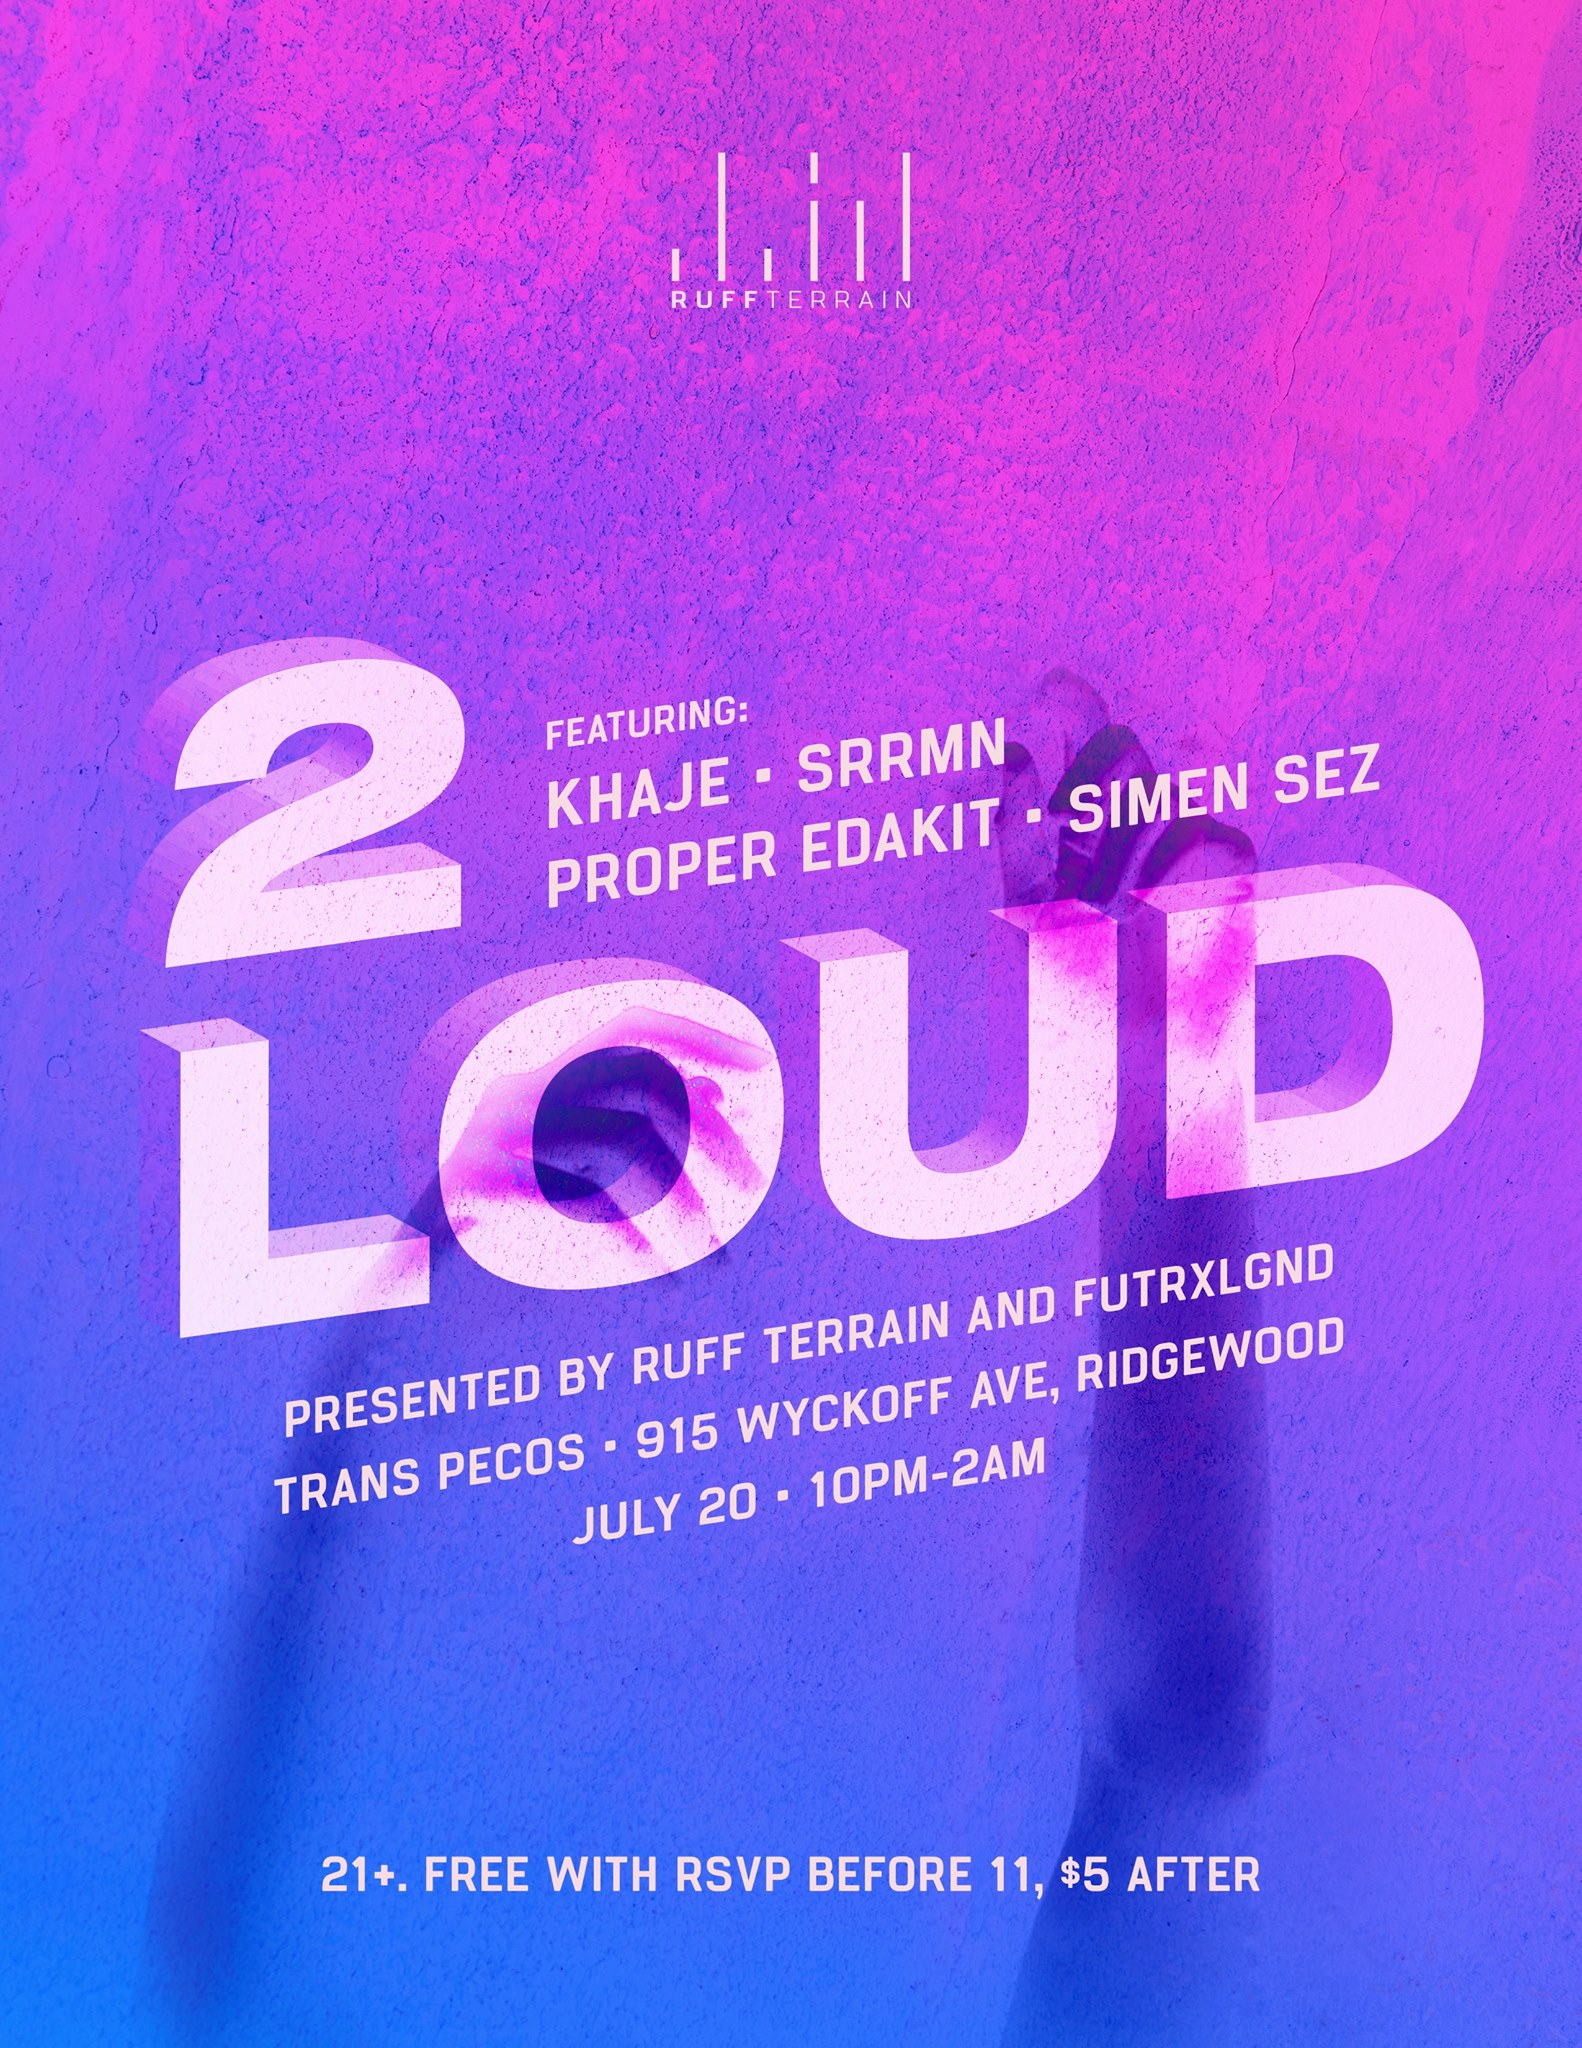 2 Loud:  2 Loud is a party series dedicated to showcasing sounds linked to and inspired by the African diaspora, with a futuristic/electronic twist. From Hip-Hop, Future Dancehall, and Afrobeat to our own dynamic twists on pop music, DJs curate an energetic and explorative experience for all patrons.  Free before 11 with RSVP - 5 dollars after  KHAJE SRRMN Proper Edakit Simen Sez